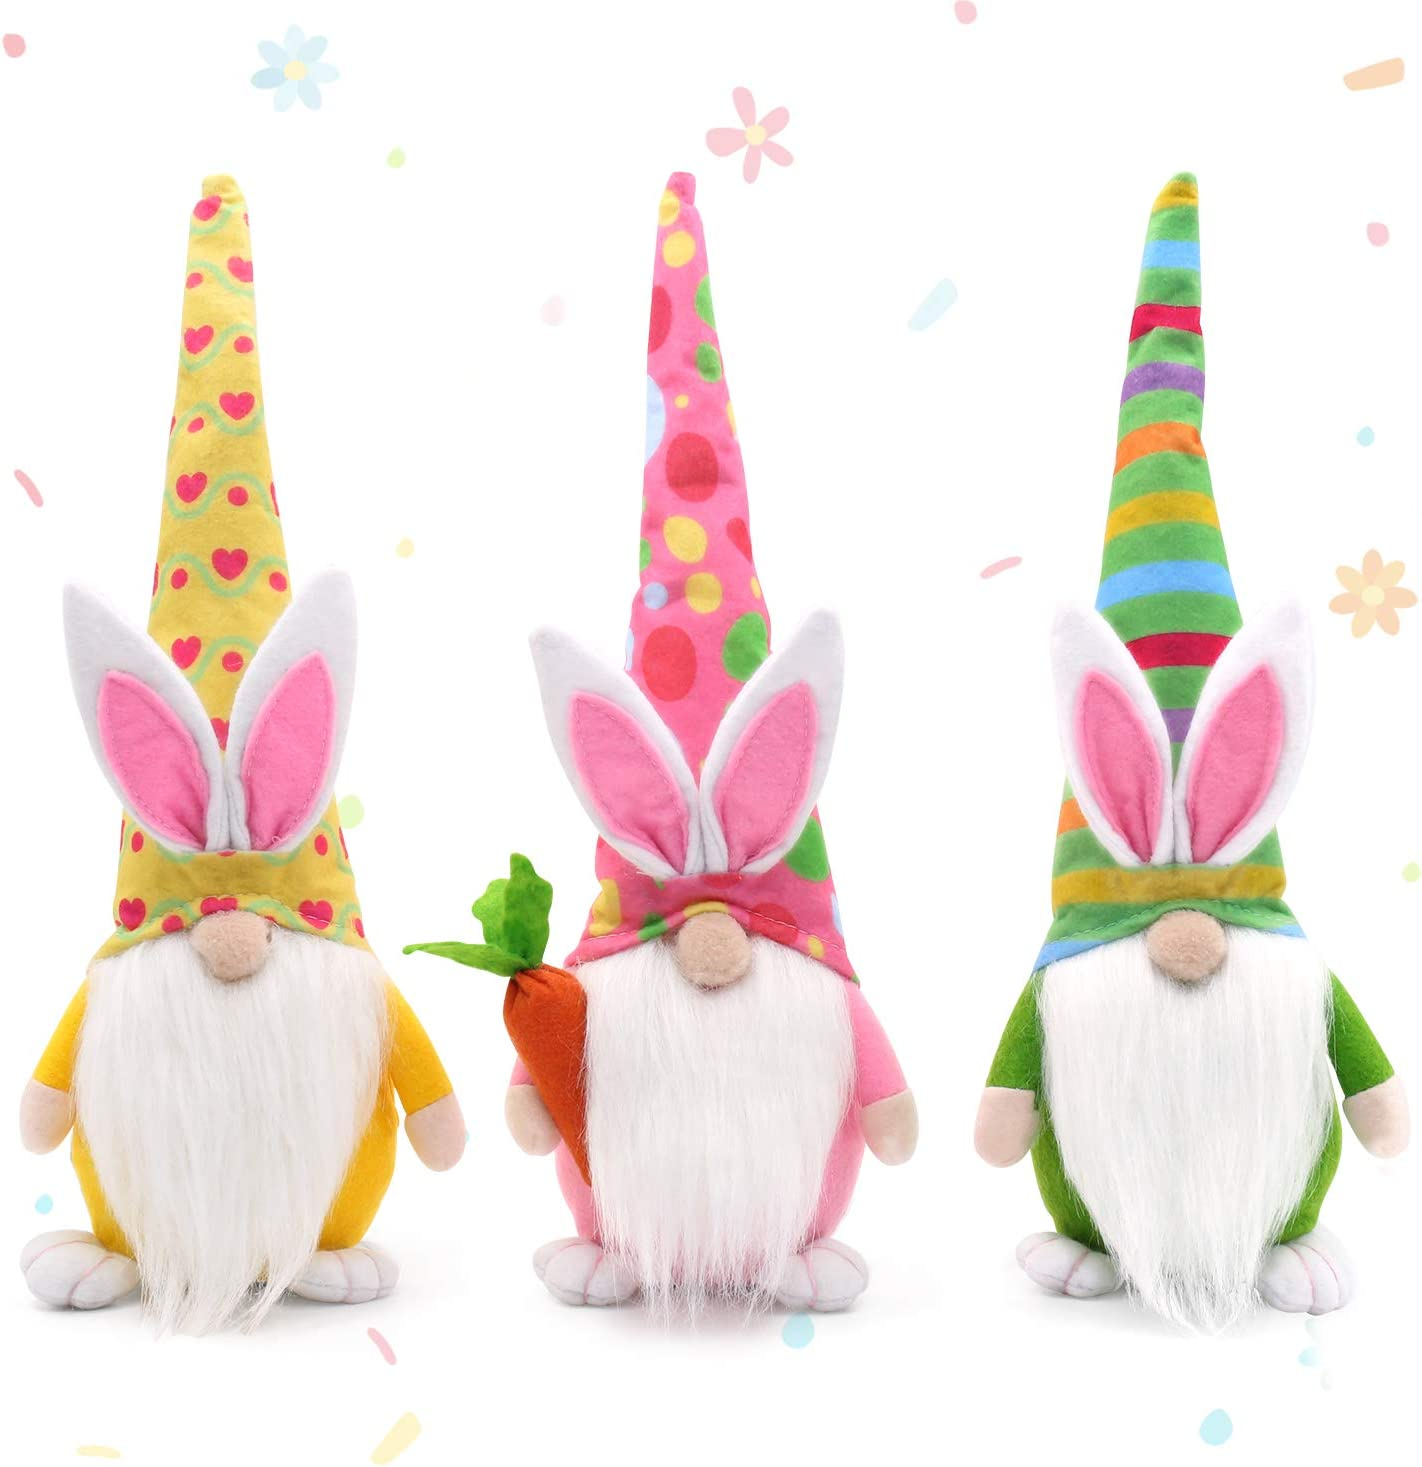 Easter Bunny Gnomes Spring Gifts Girl Room Decor Nordic Swedish Nisse Scandinavian Tomte Elf Dwarf Home Household Ornaments Set of 3